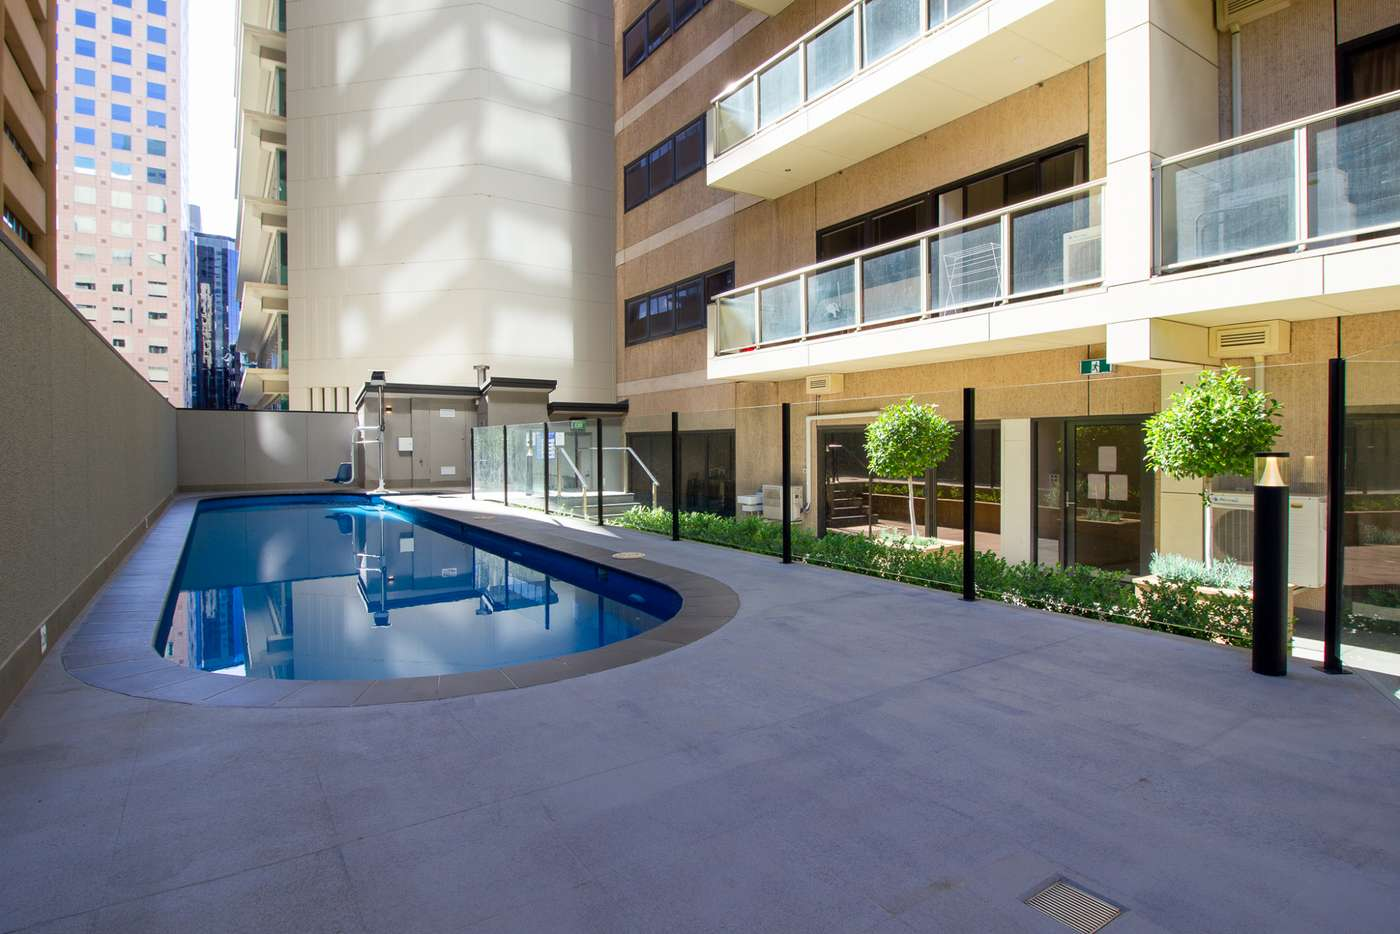 Main view of Homely house listing, 702/39 Grenfell Street, Adelaide SA 5000